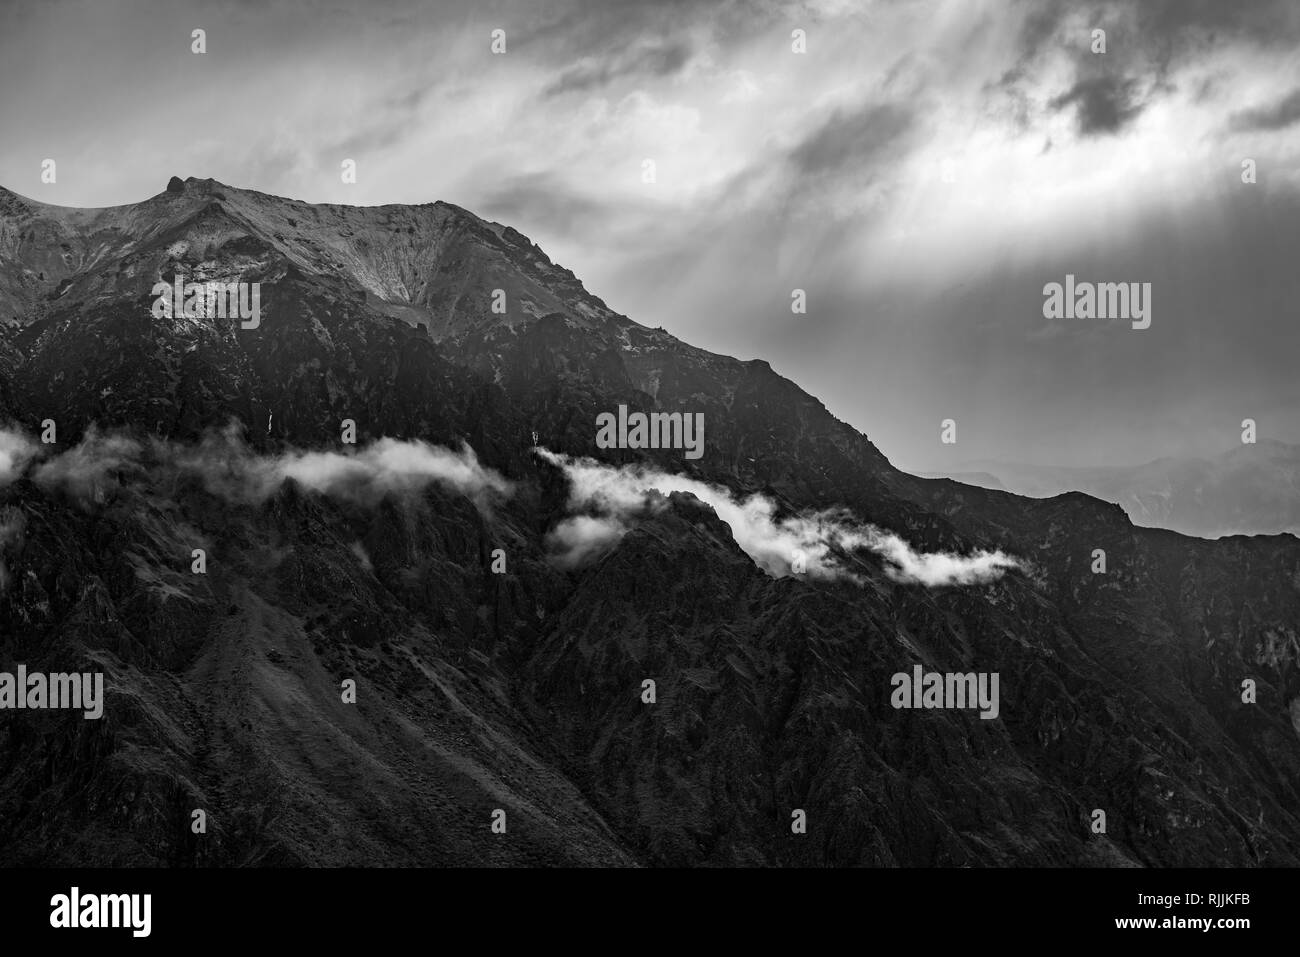 The Andes mountain range in black and white as sunlight illuminates the peaks and clouds near the Colca Canyon, Arequipa, Peru. - Stock Image